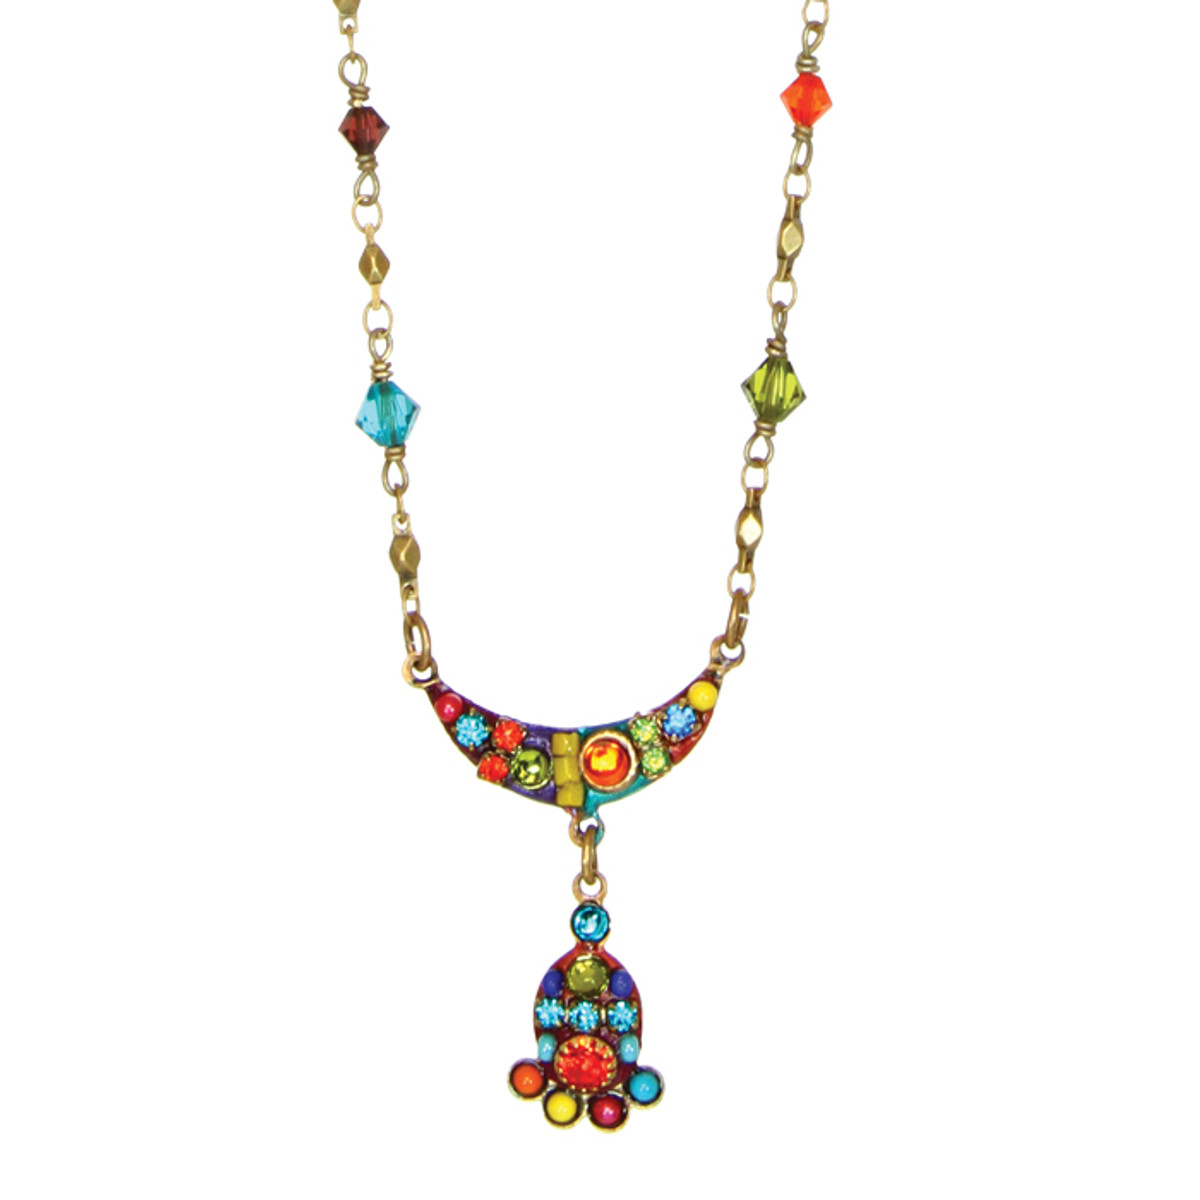 Michal Golan Necklace - Multibright Curve With Dangle Chain